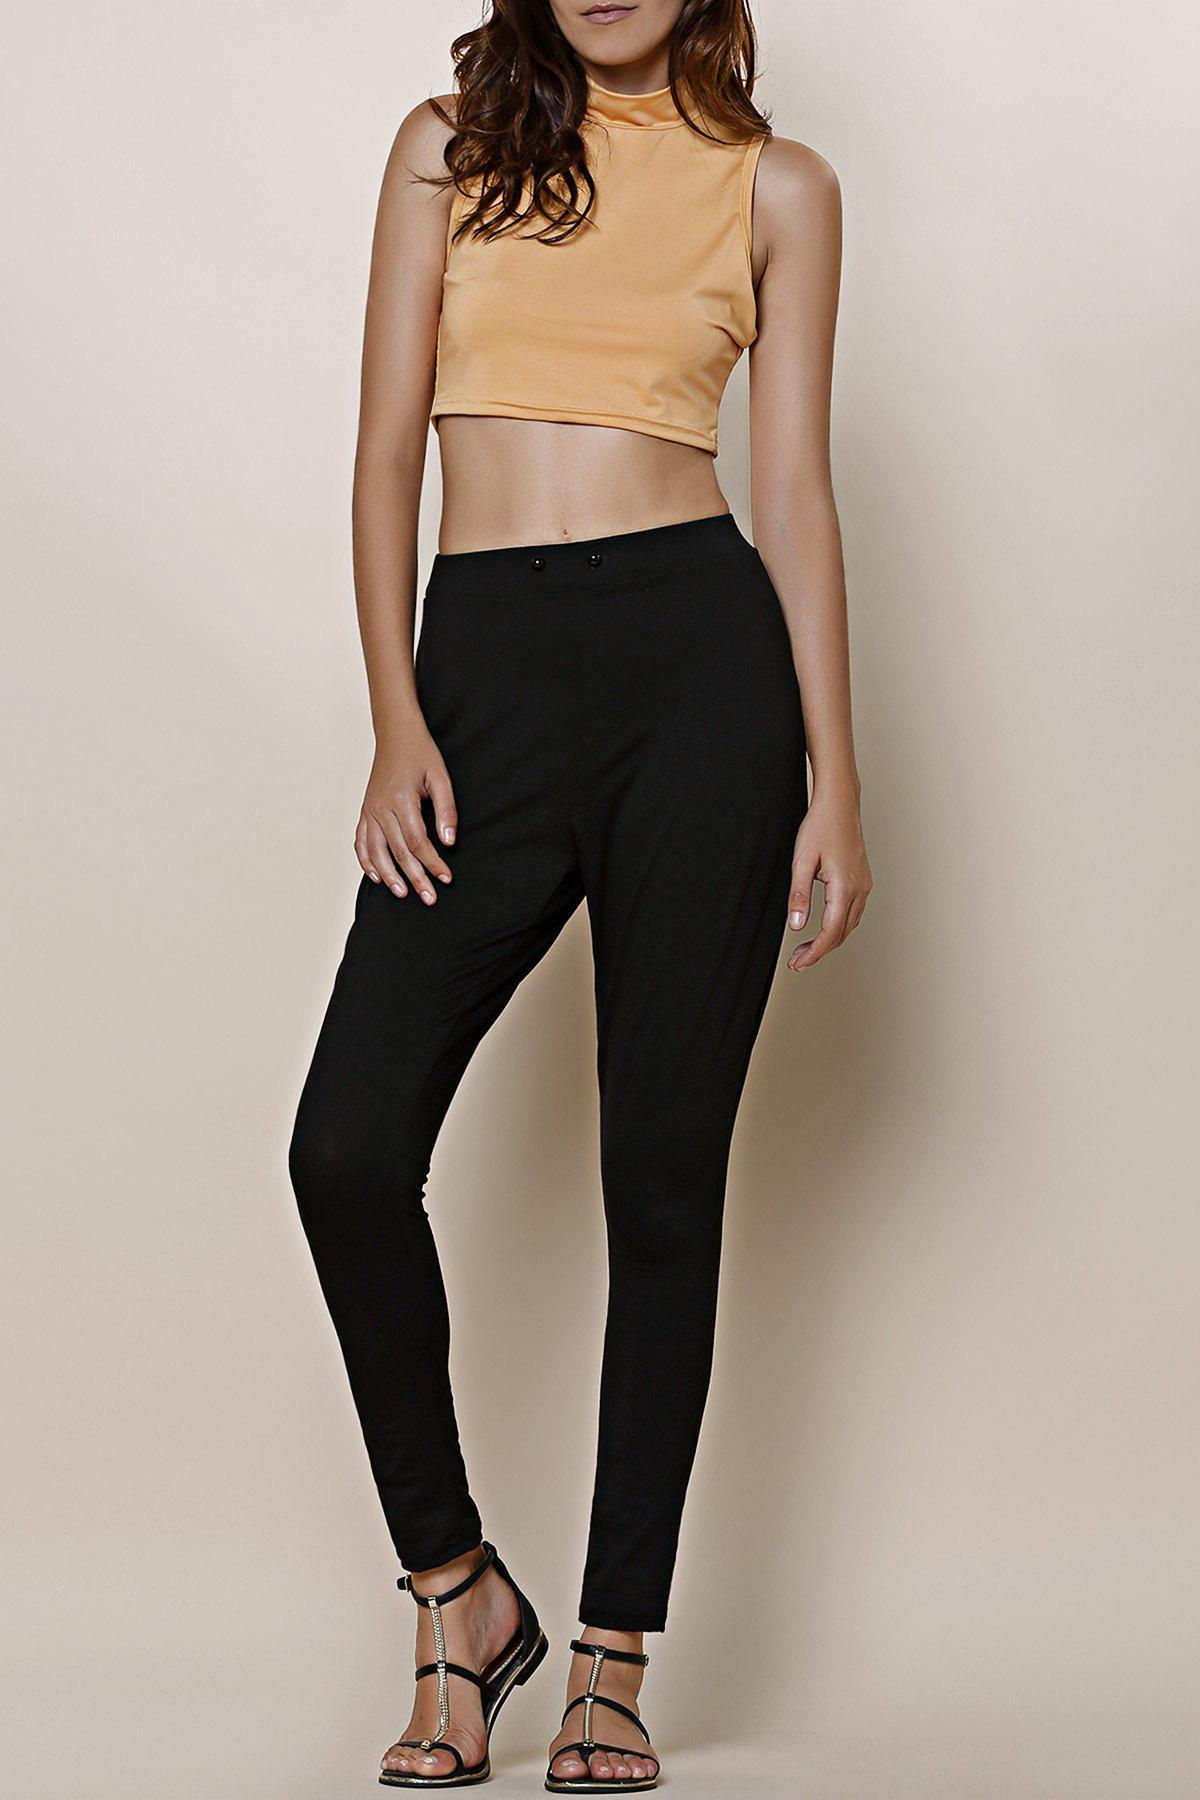 Active Round Collar Solid Color Crop Top + High Waist Ankle Pants Twinset For Women - BLACK M